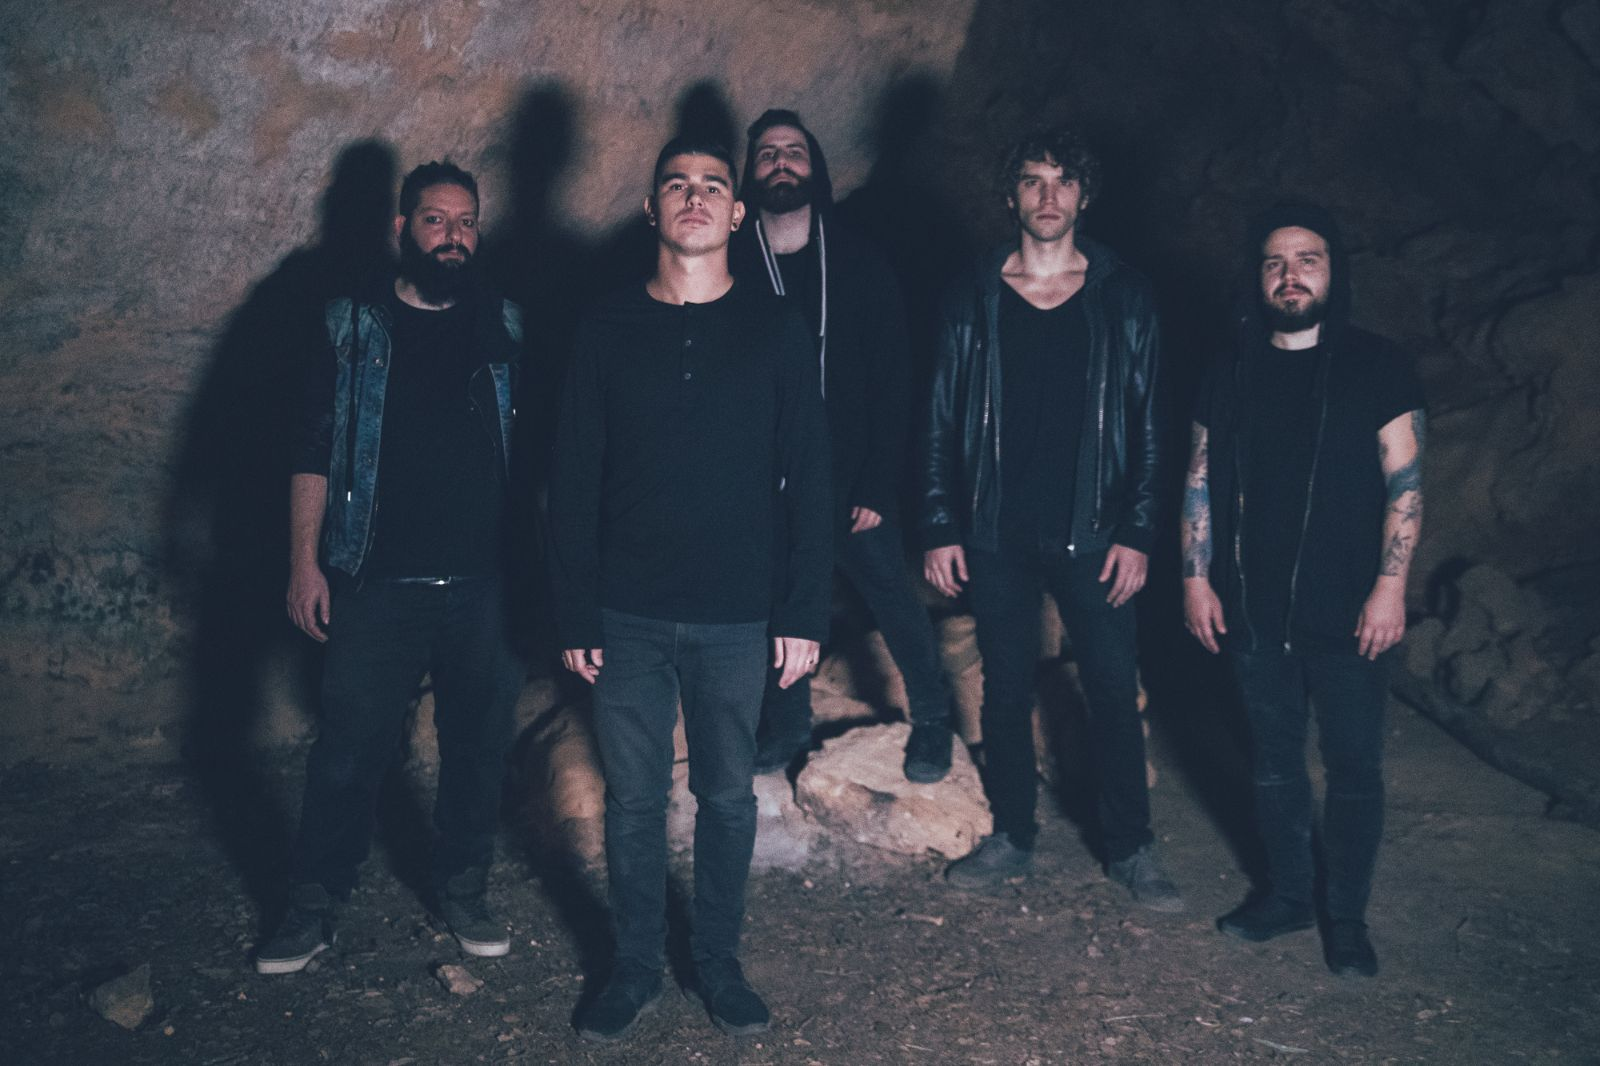 Italian metalcore troupe  ARMS LIKE ANCHORS have released their new single 'Slaves'.   Premiering the video via Impericon , you can now watch 'Slaves' here:   https://www.youtube.com/watch?v=BobZ-umekgs   From Milan, Italy, the five-piece have already played with  Of Mice & Men , Being As An Ocean , Napoleon , Your Demise and more. Following the release of their previous two EPs  The Strangers and  In A Golden Reign , the band are preparing to release their debut full-length later this year.